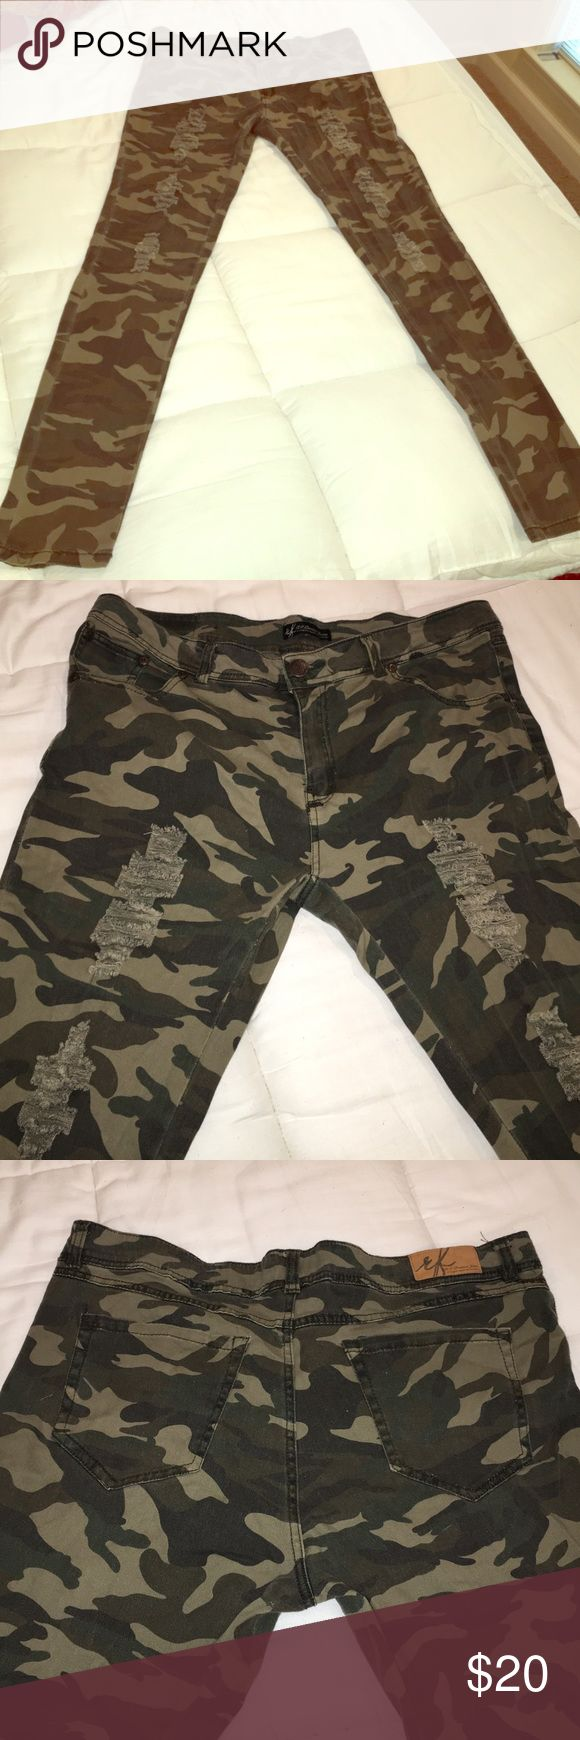 Women's Distressed Camo Pants New and without tags, but never worn. Pants have a faded look and tears to give distressed style! Olive and khaki camo! Super cute! Perfect for fall! Size 15 juniors R.F, Premium Jeans Pants Skinny